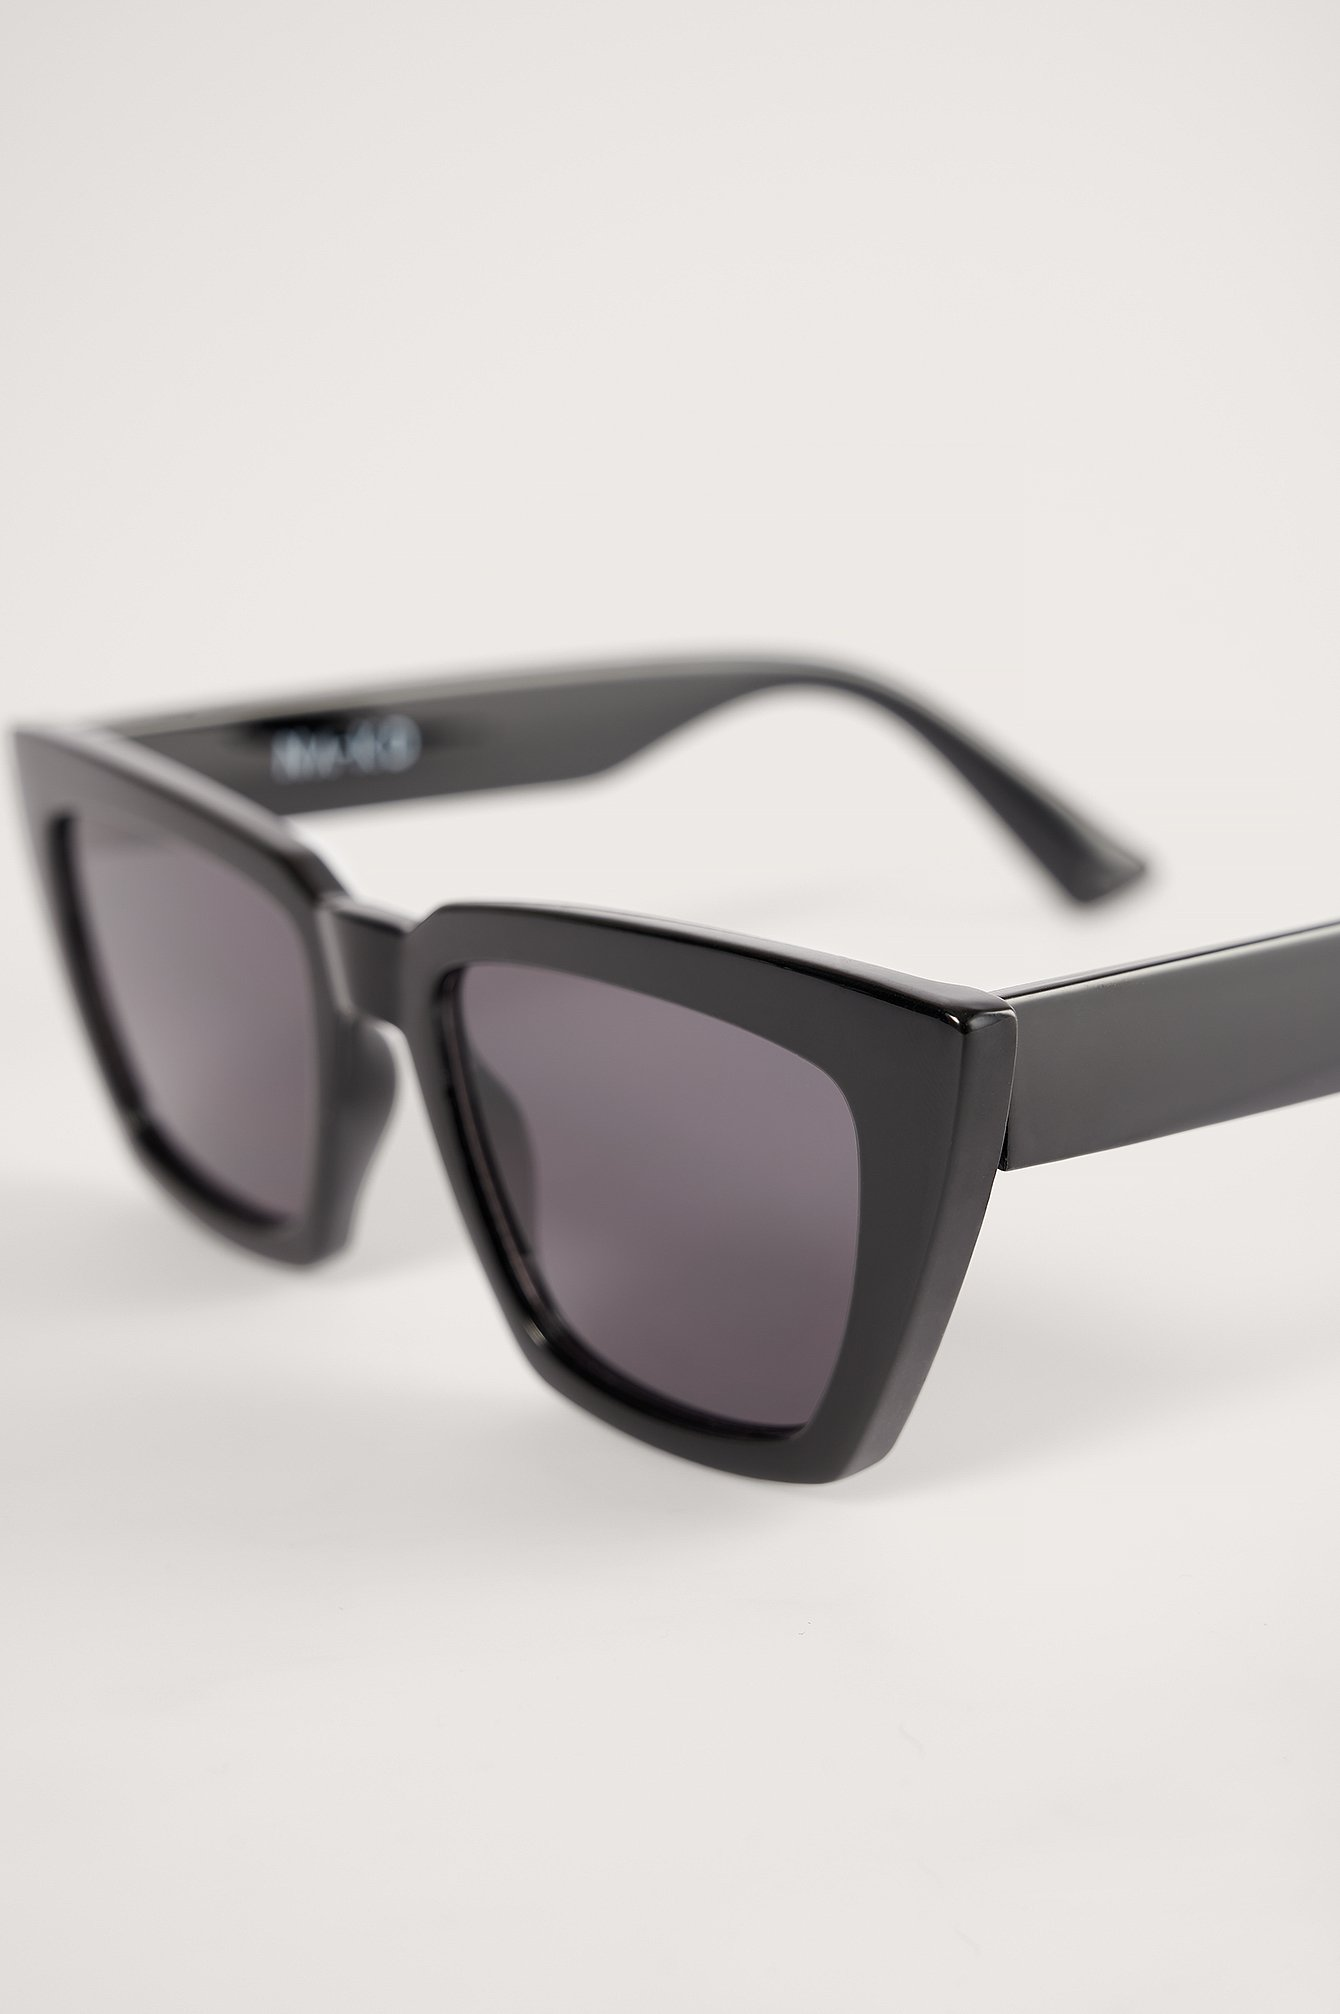 Black Basic Squared Sunglasses